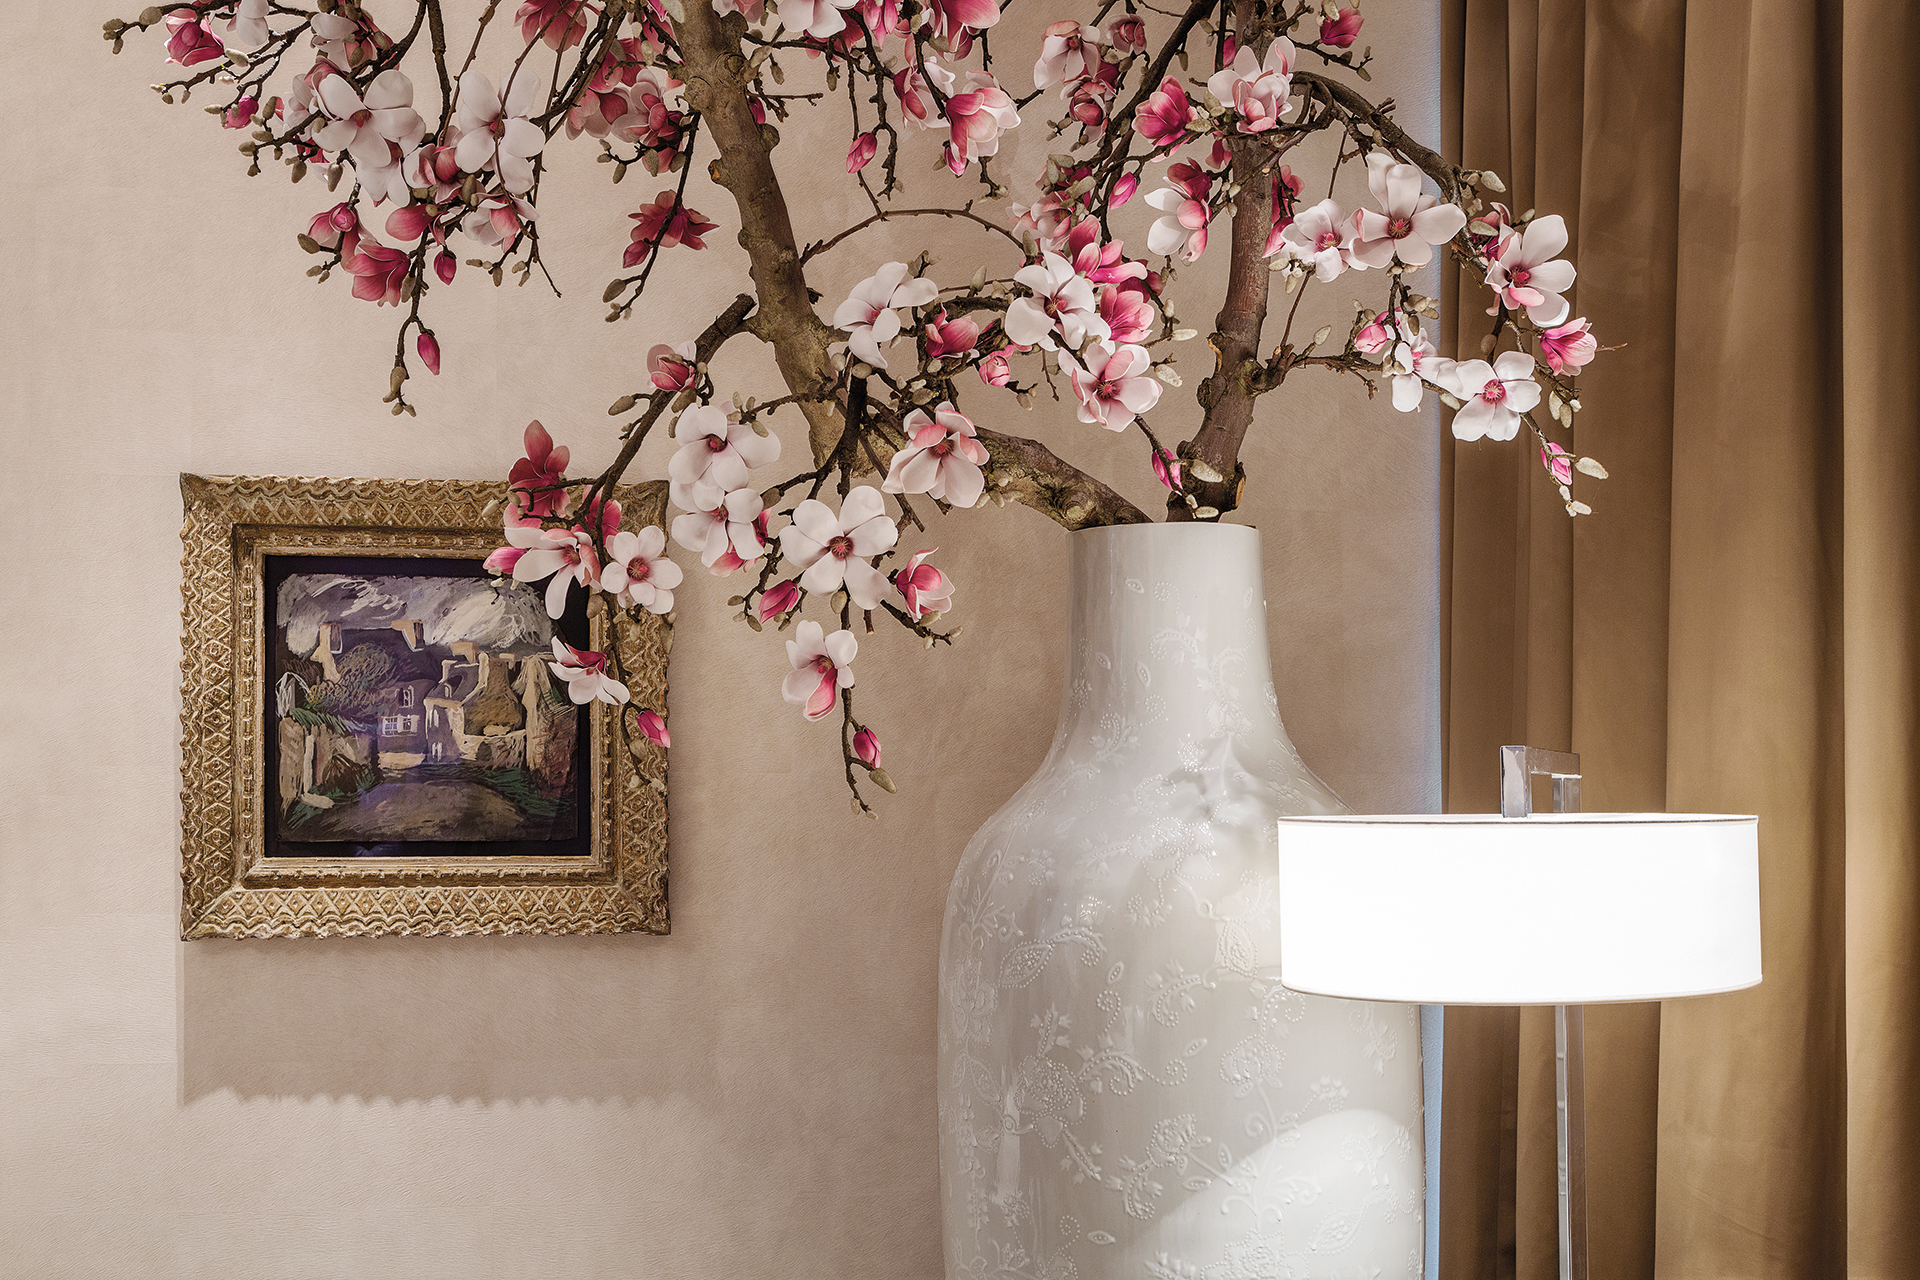 Hallway decoration featuring a small painting and large vase holding Menno Kroon blossom tree